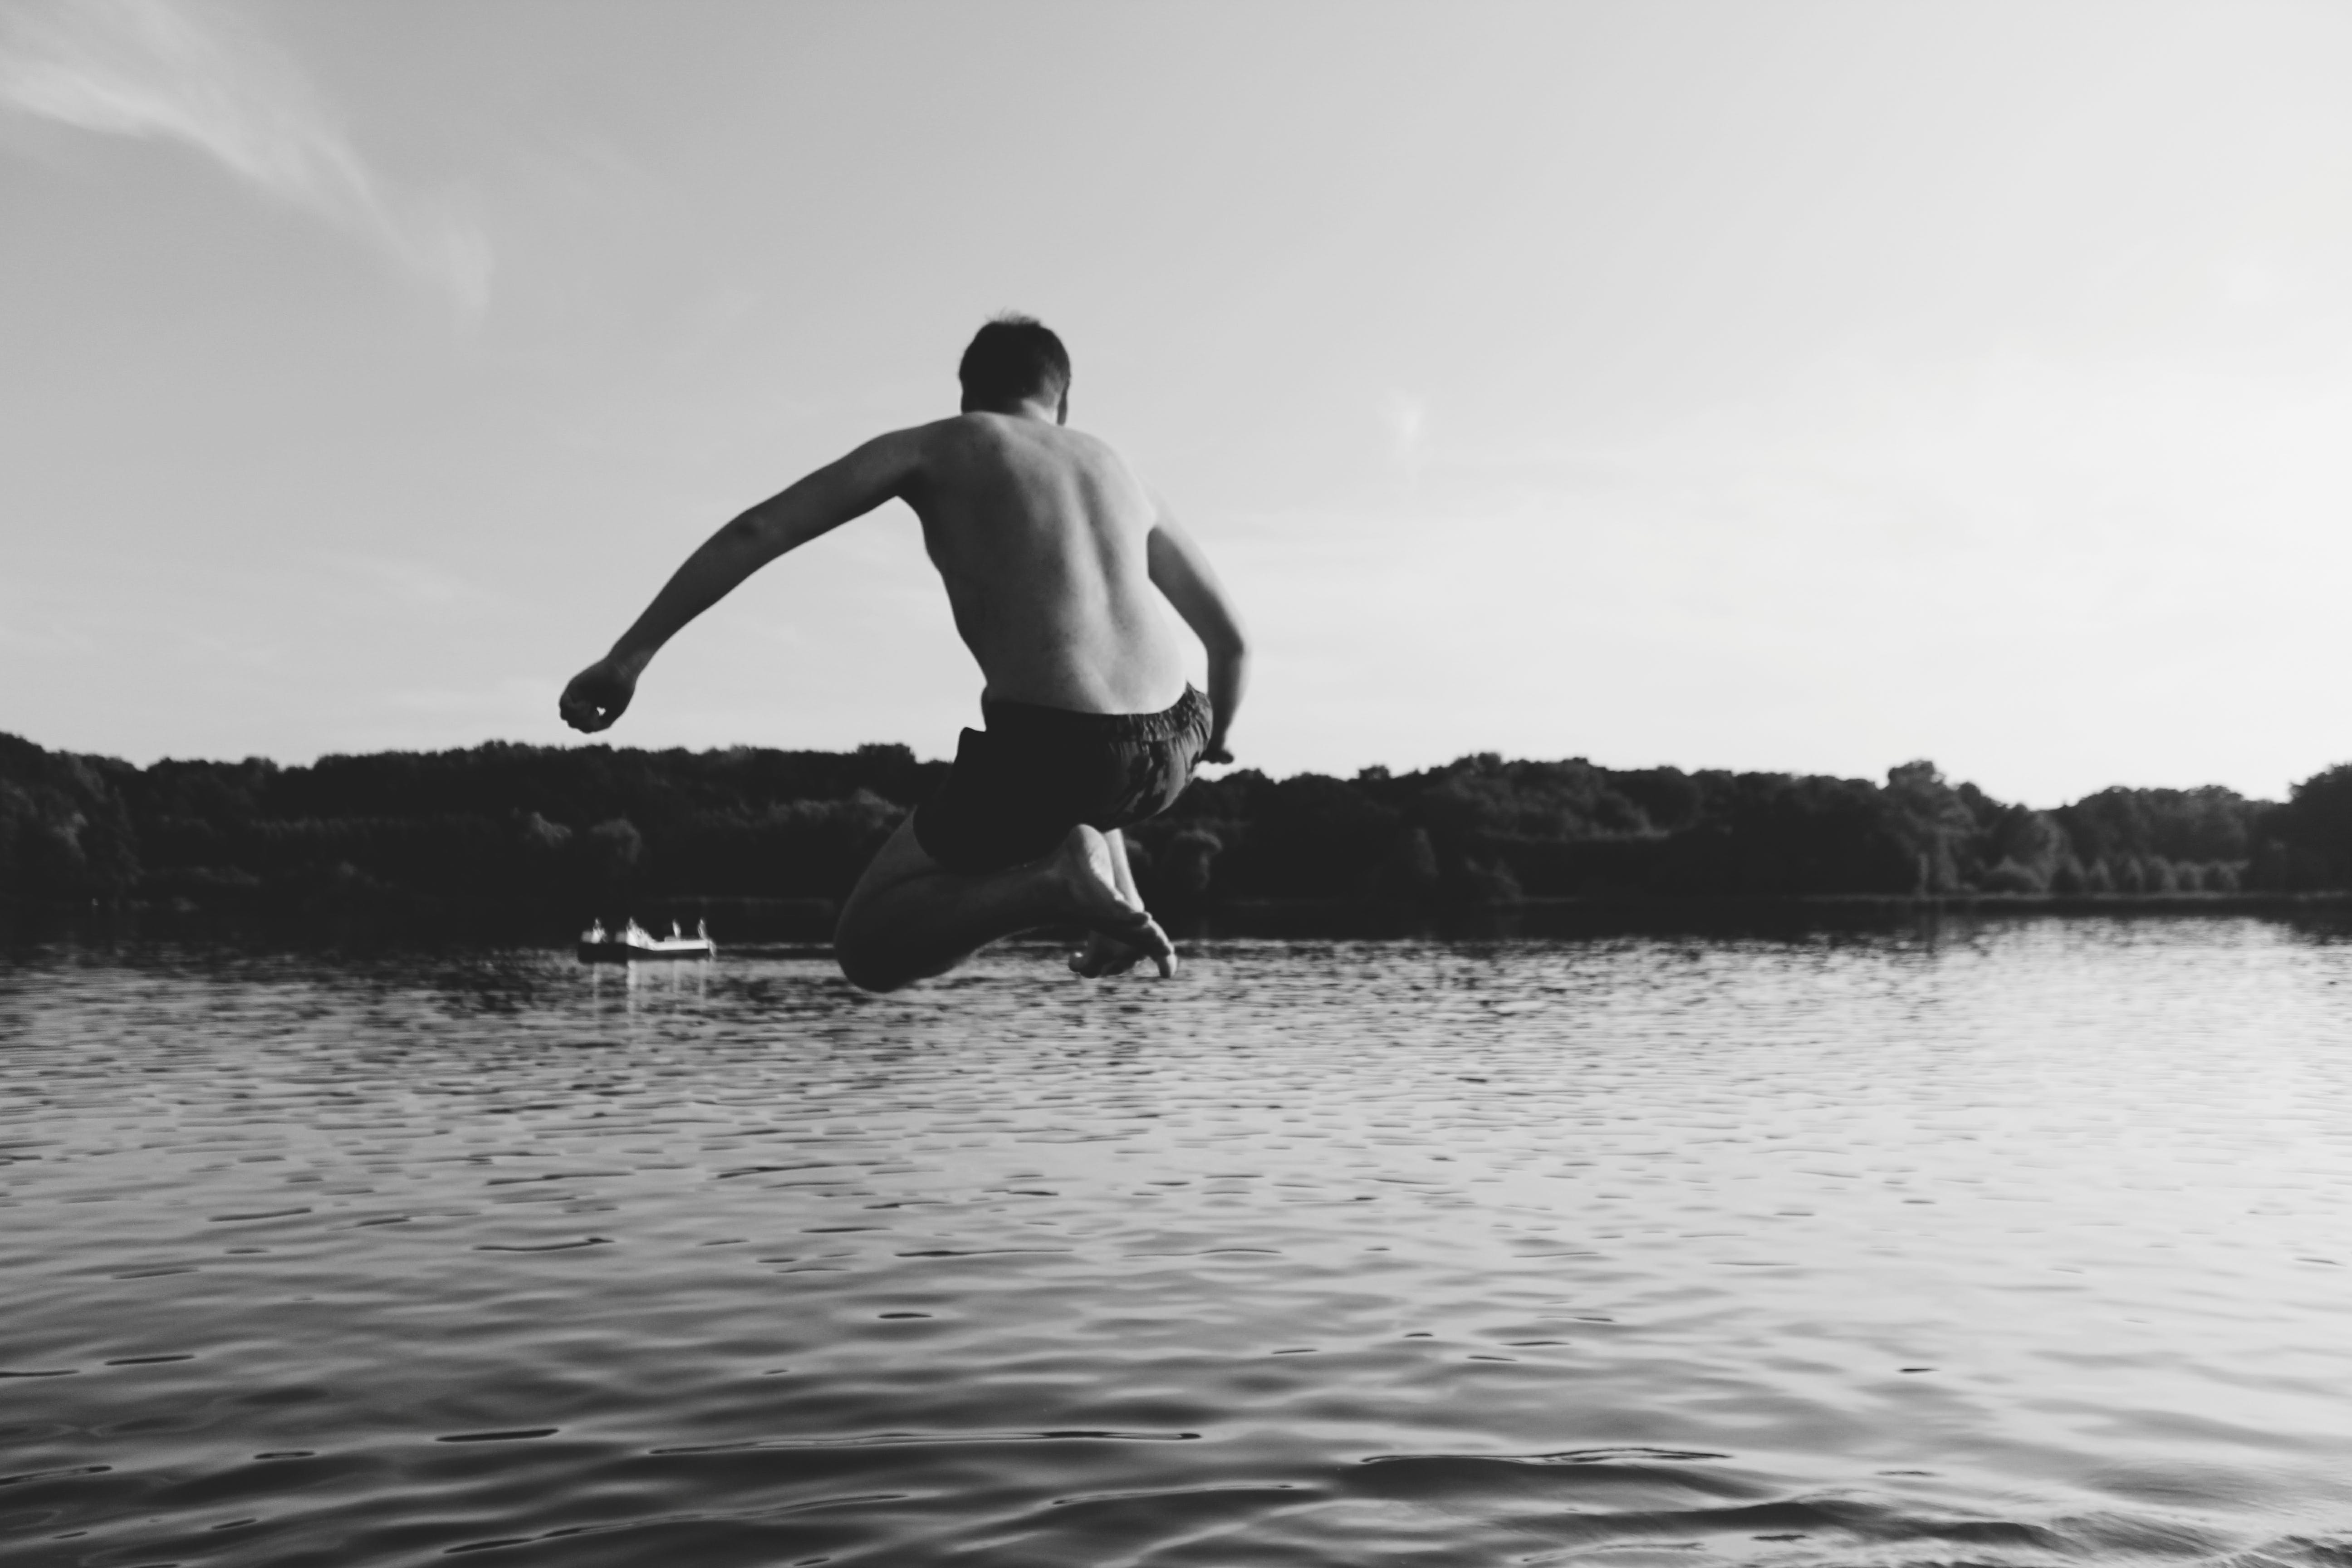 Monochrome Photography of Man Jumping into The Water